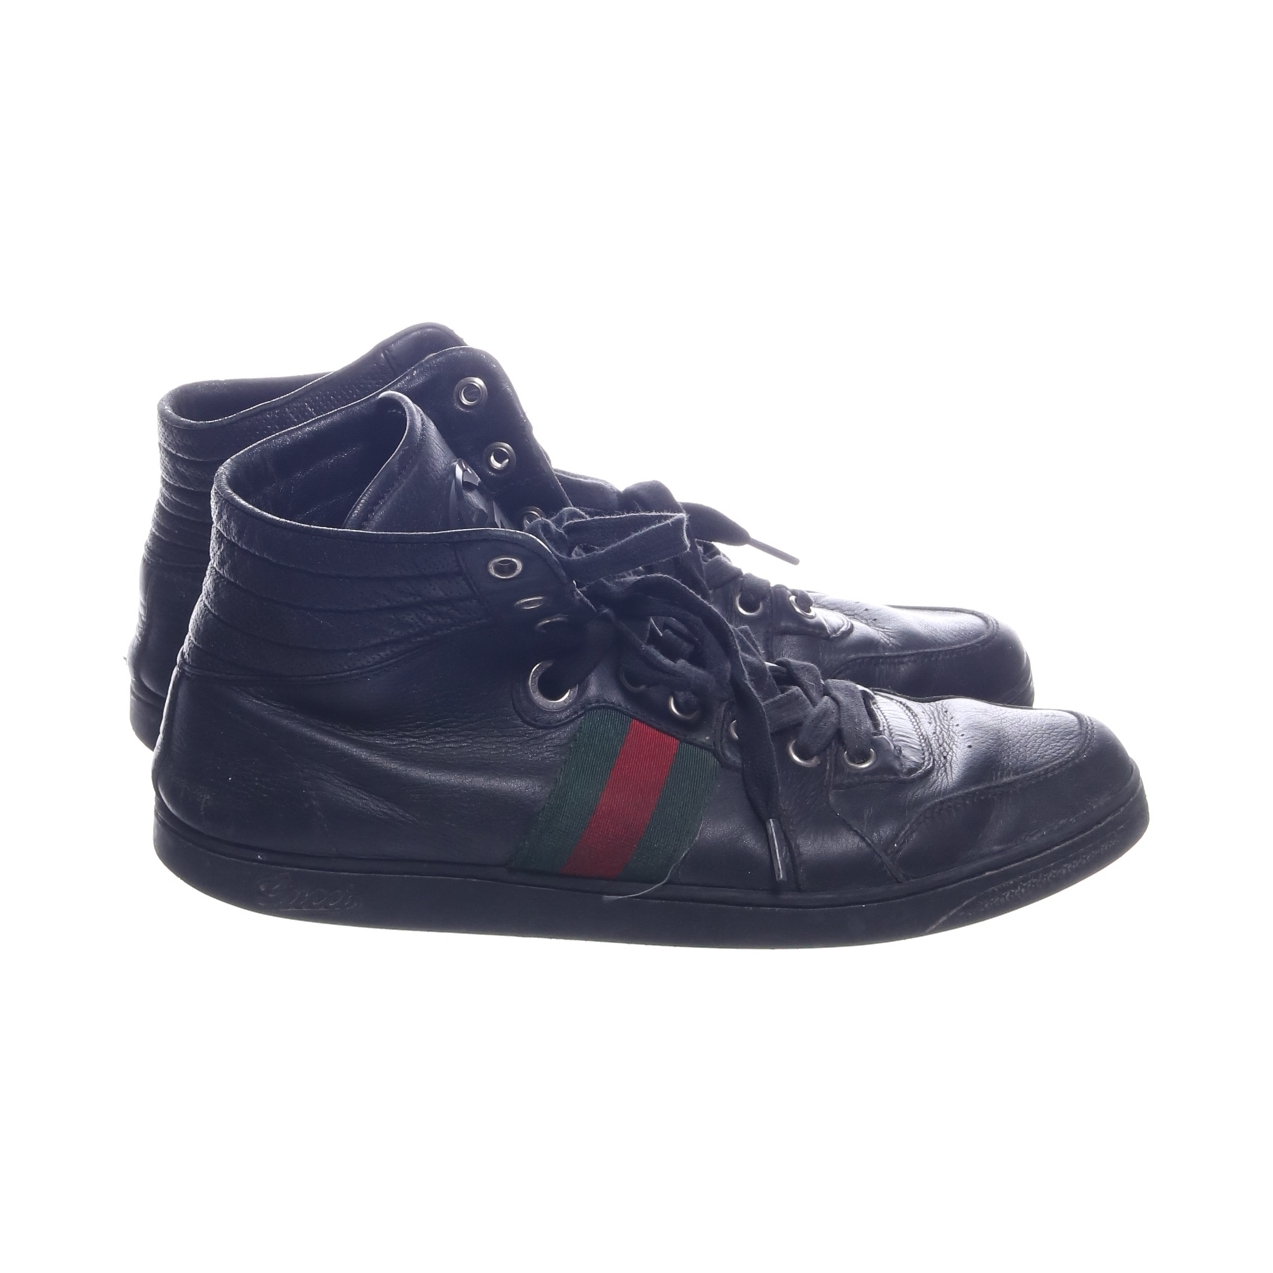 competitive price 2ae9b 96540 Sneakers (High Top Web Stripe) från Gucci   Sellpy.se